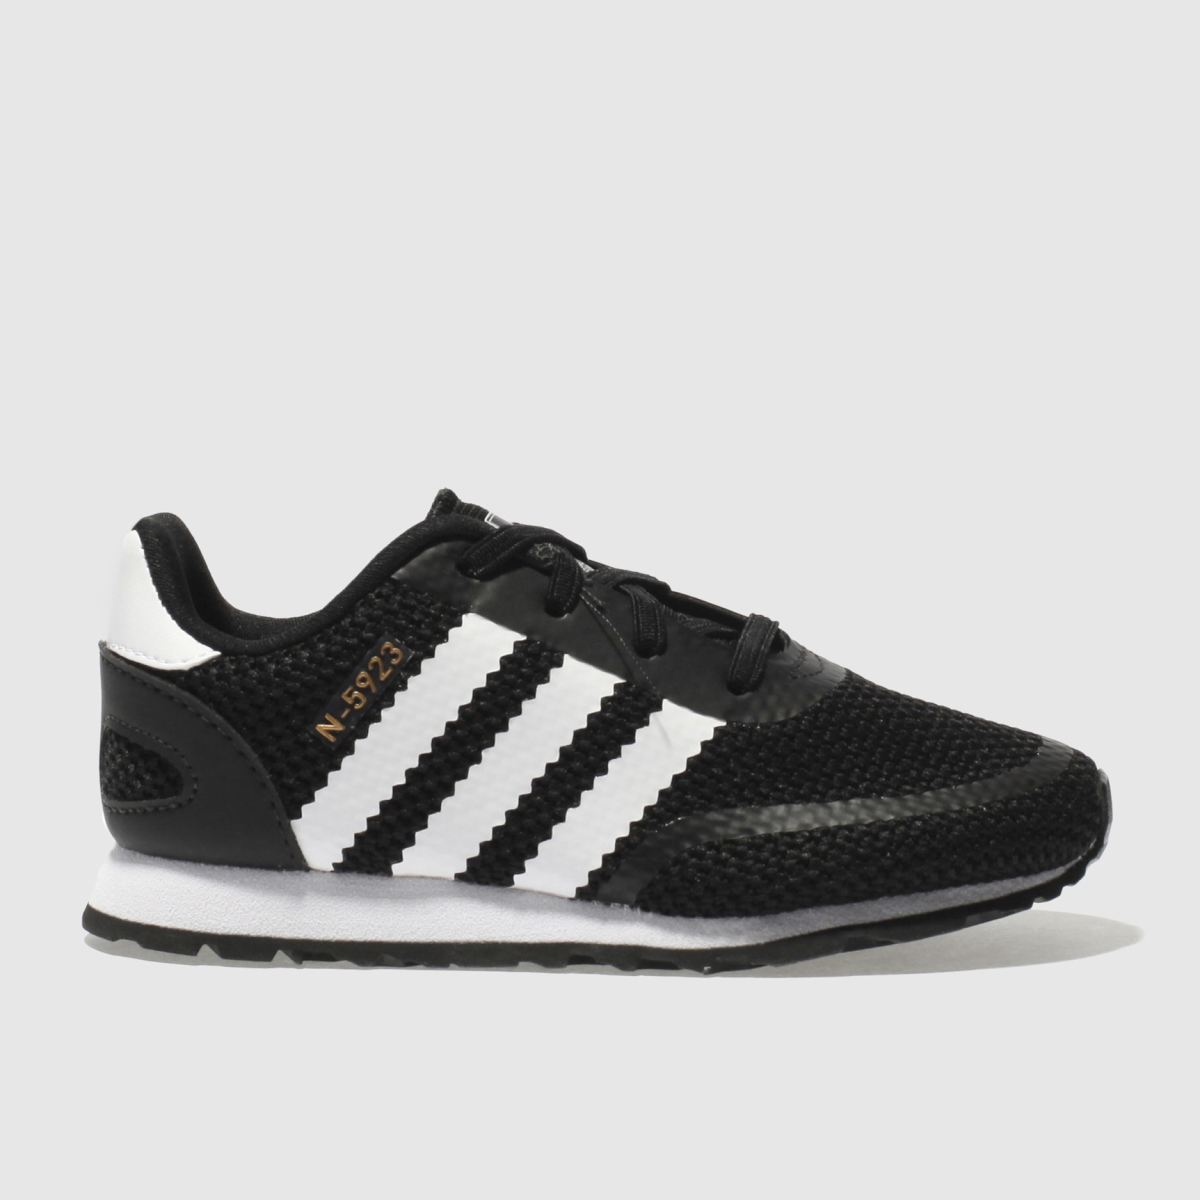 Adidas Black & White N-5923 Unisex Toddler Toddler